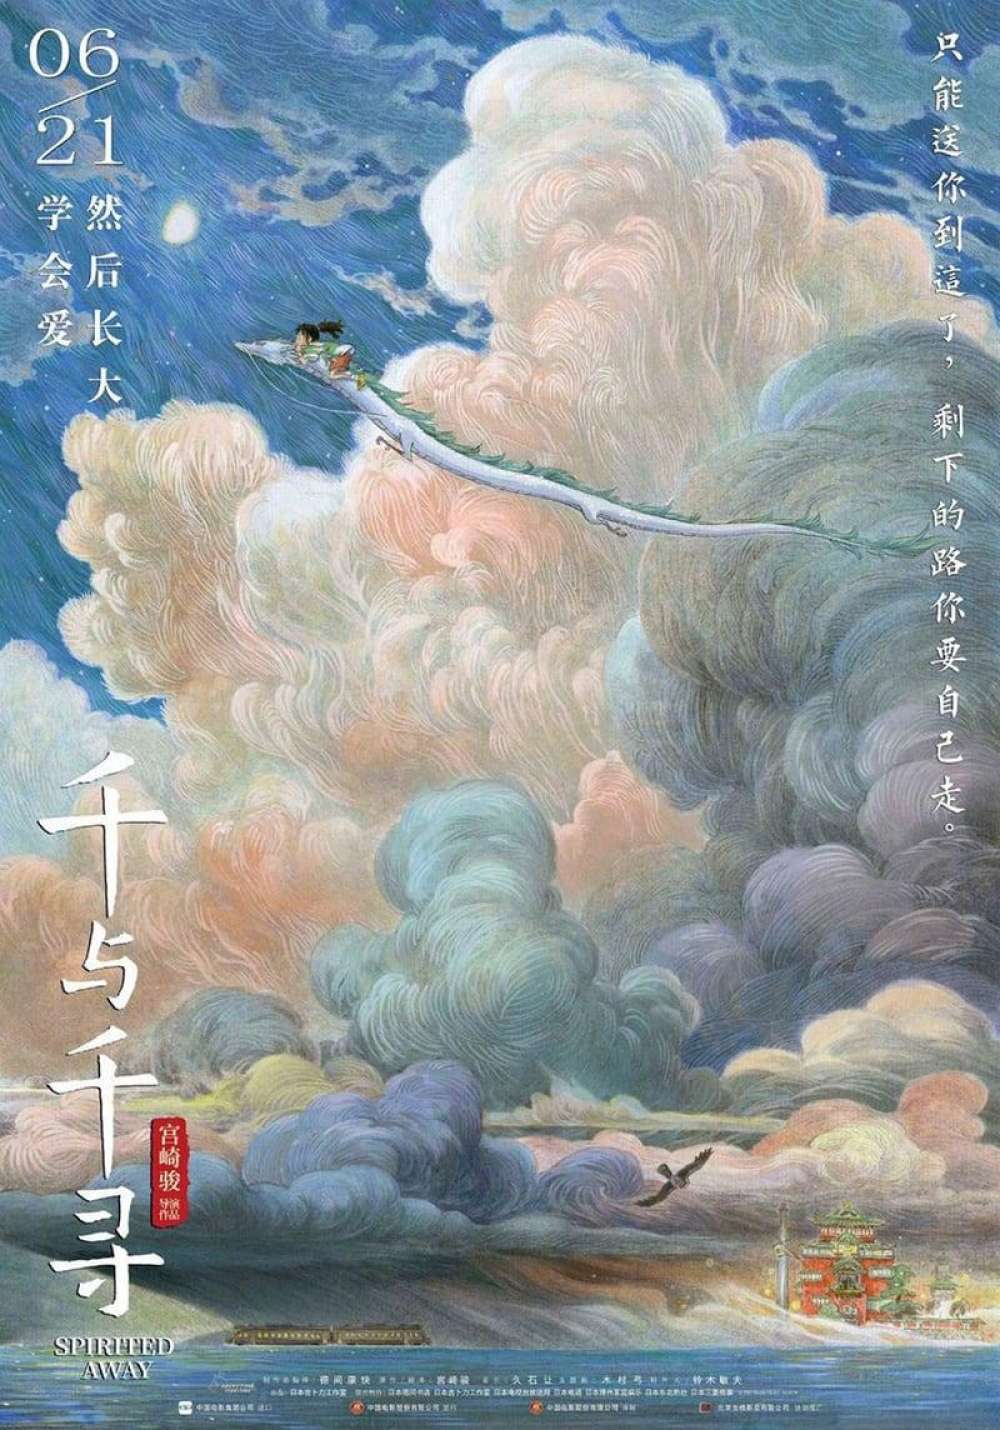 Spirited Away Poster by Zao Dao